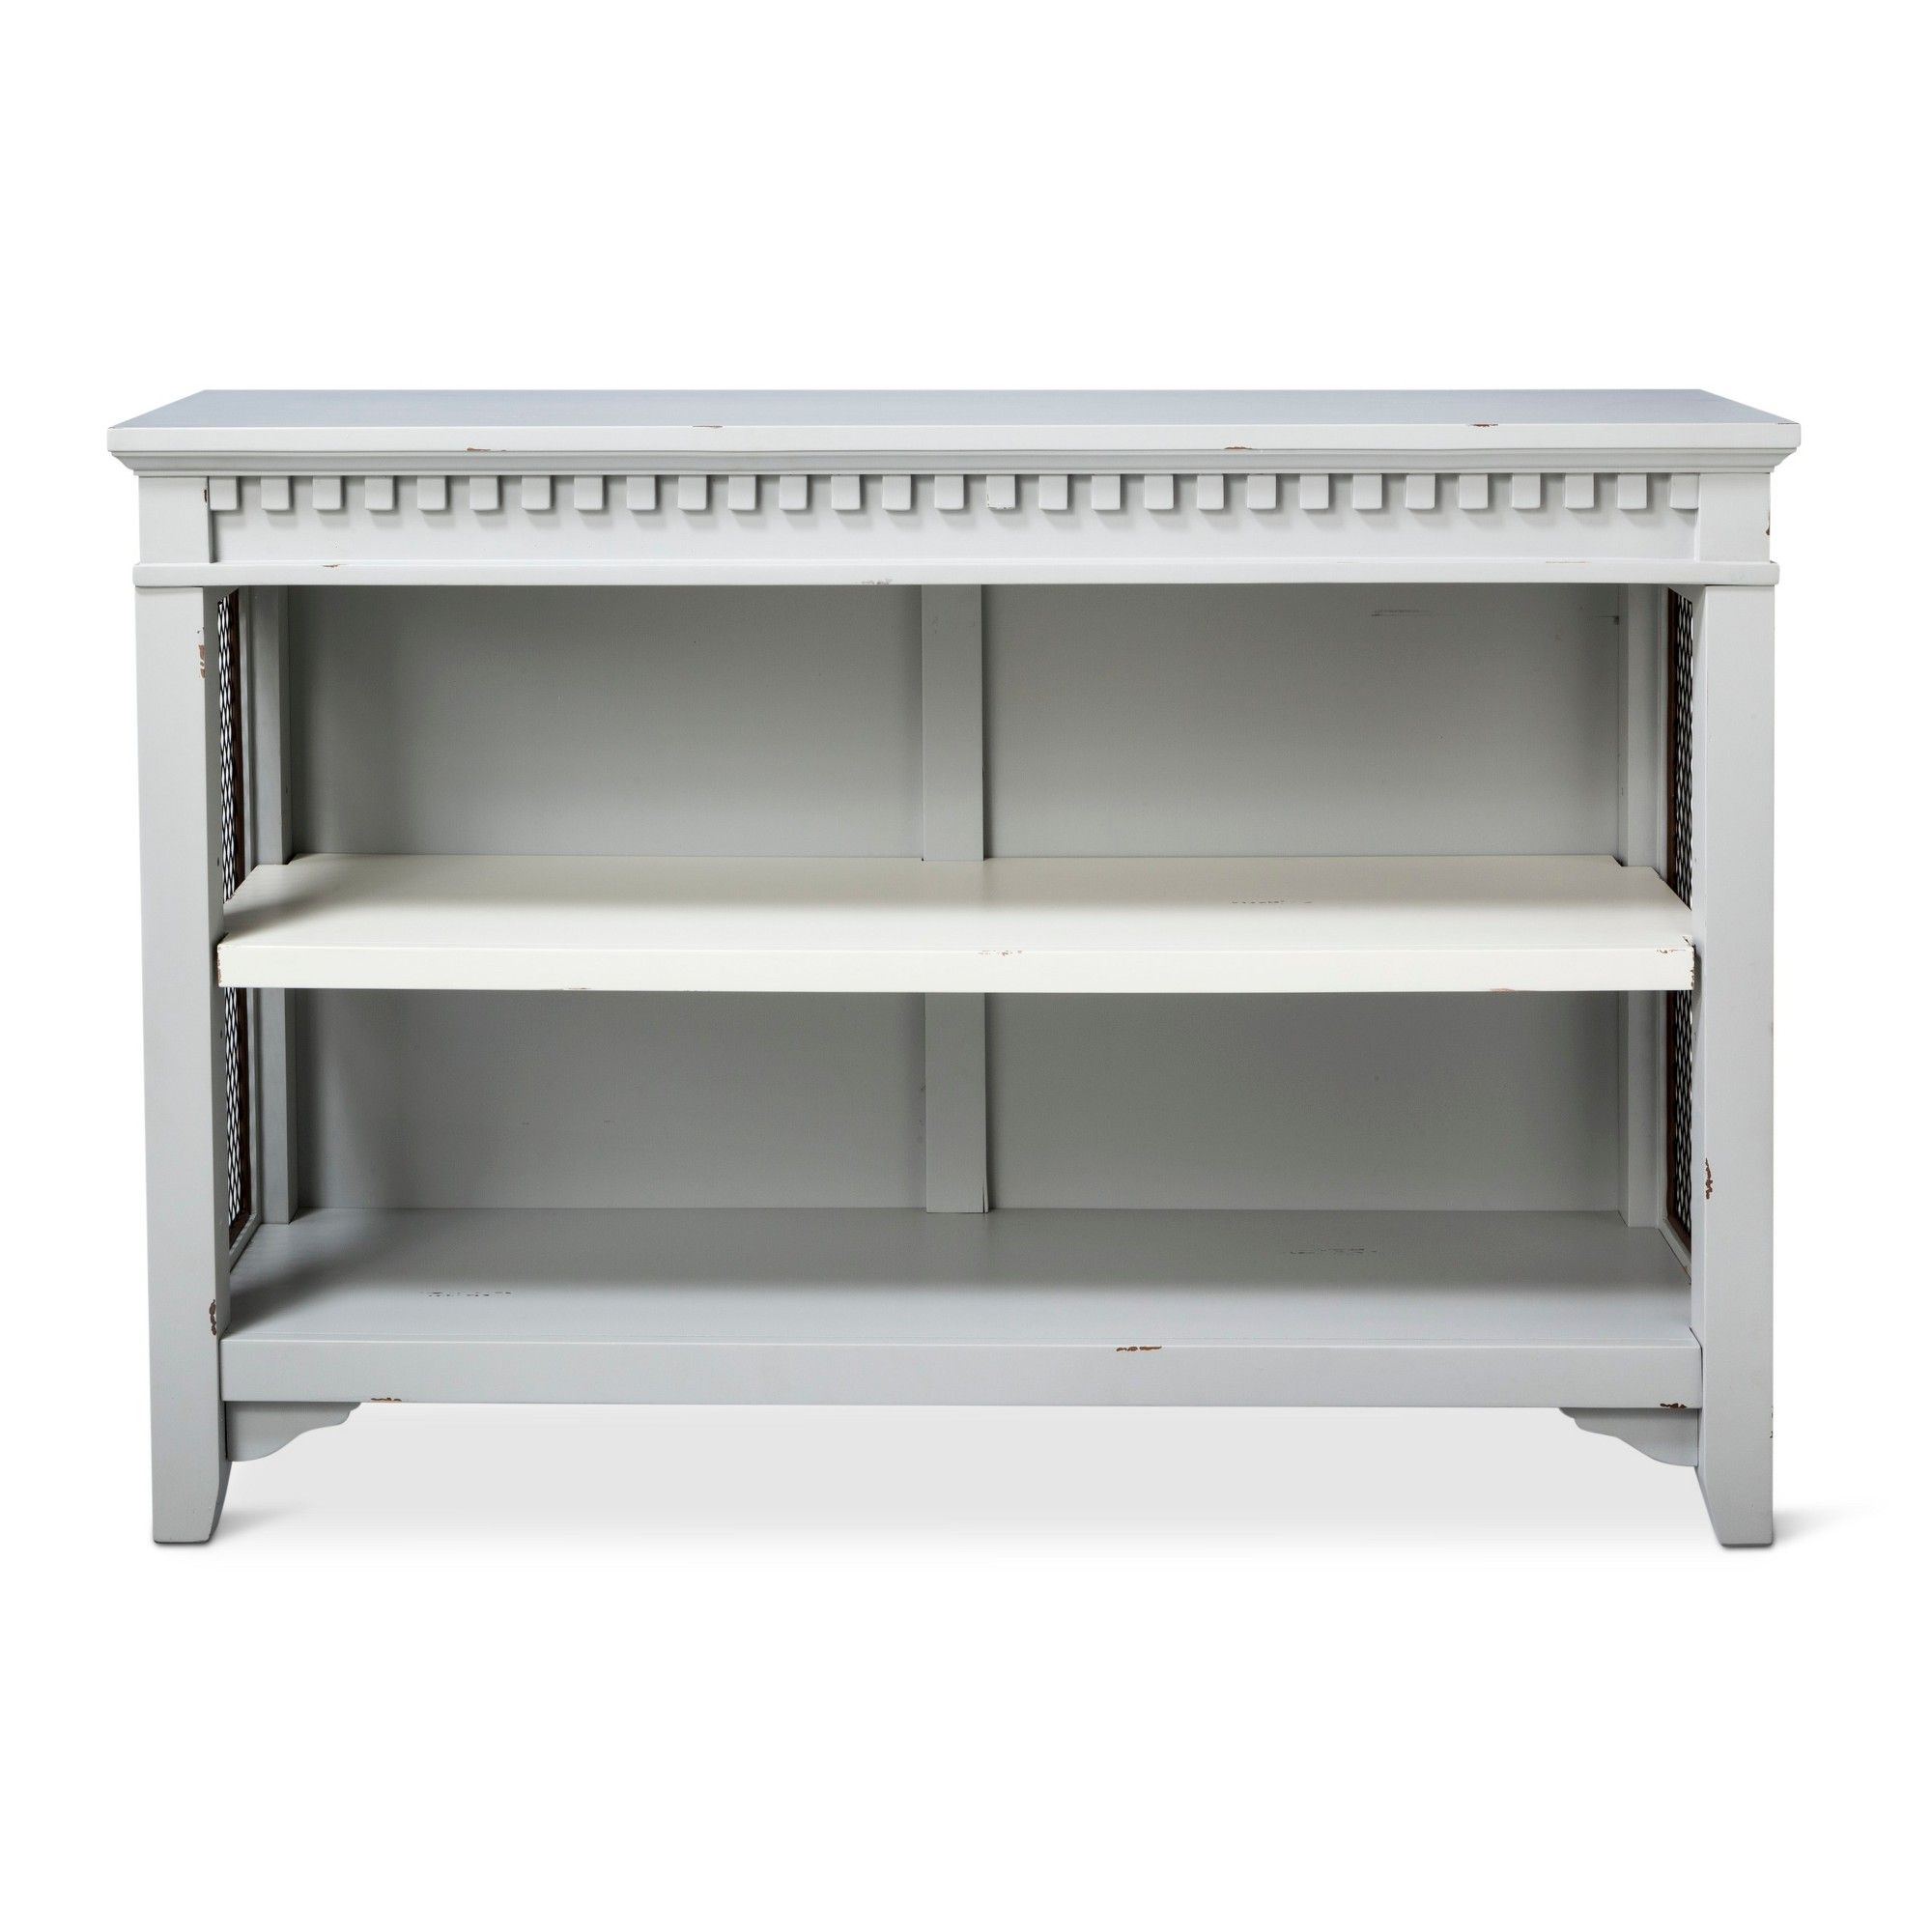 known tall photos well long accent storages me of showing bookcase view near bookcases for wooden furniture deep horizontal attachment bookshelf